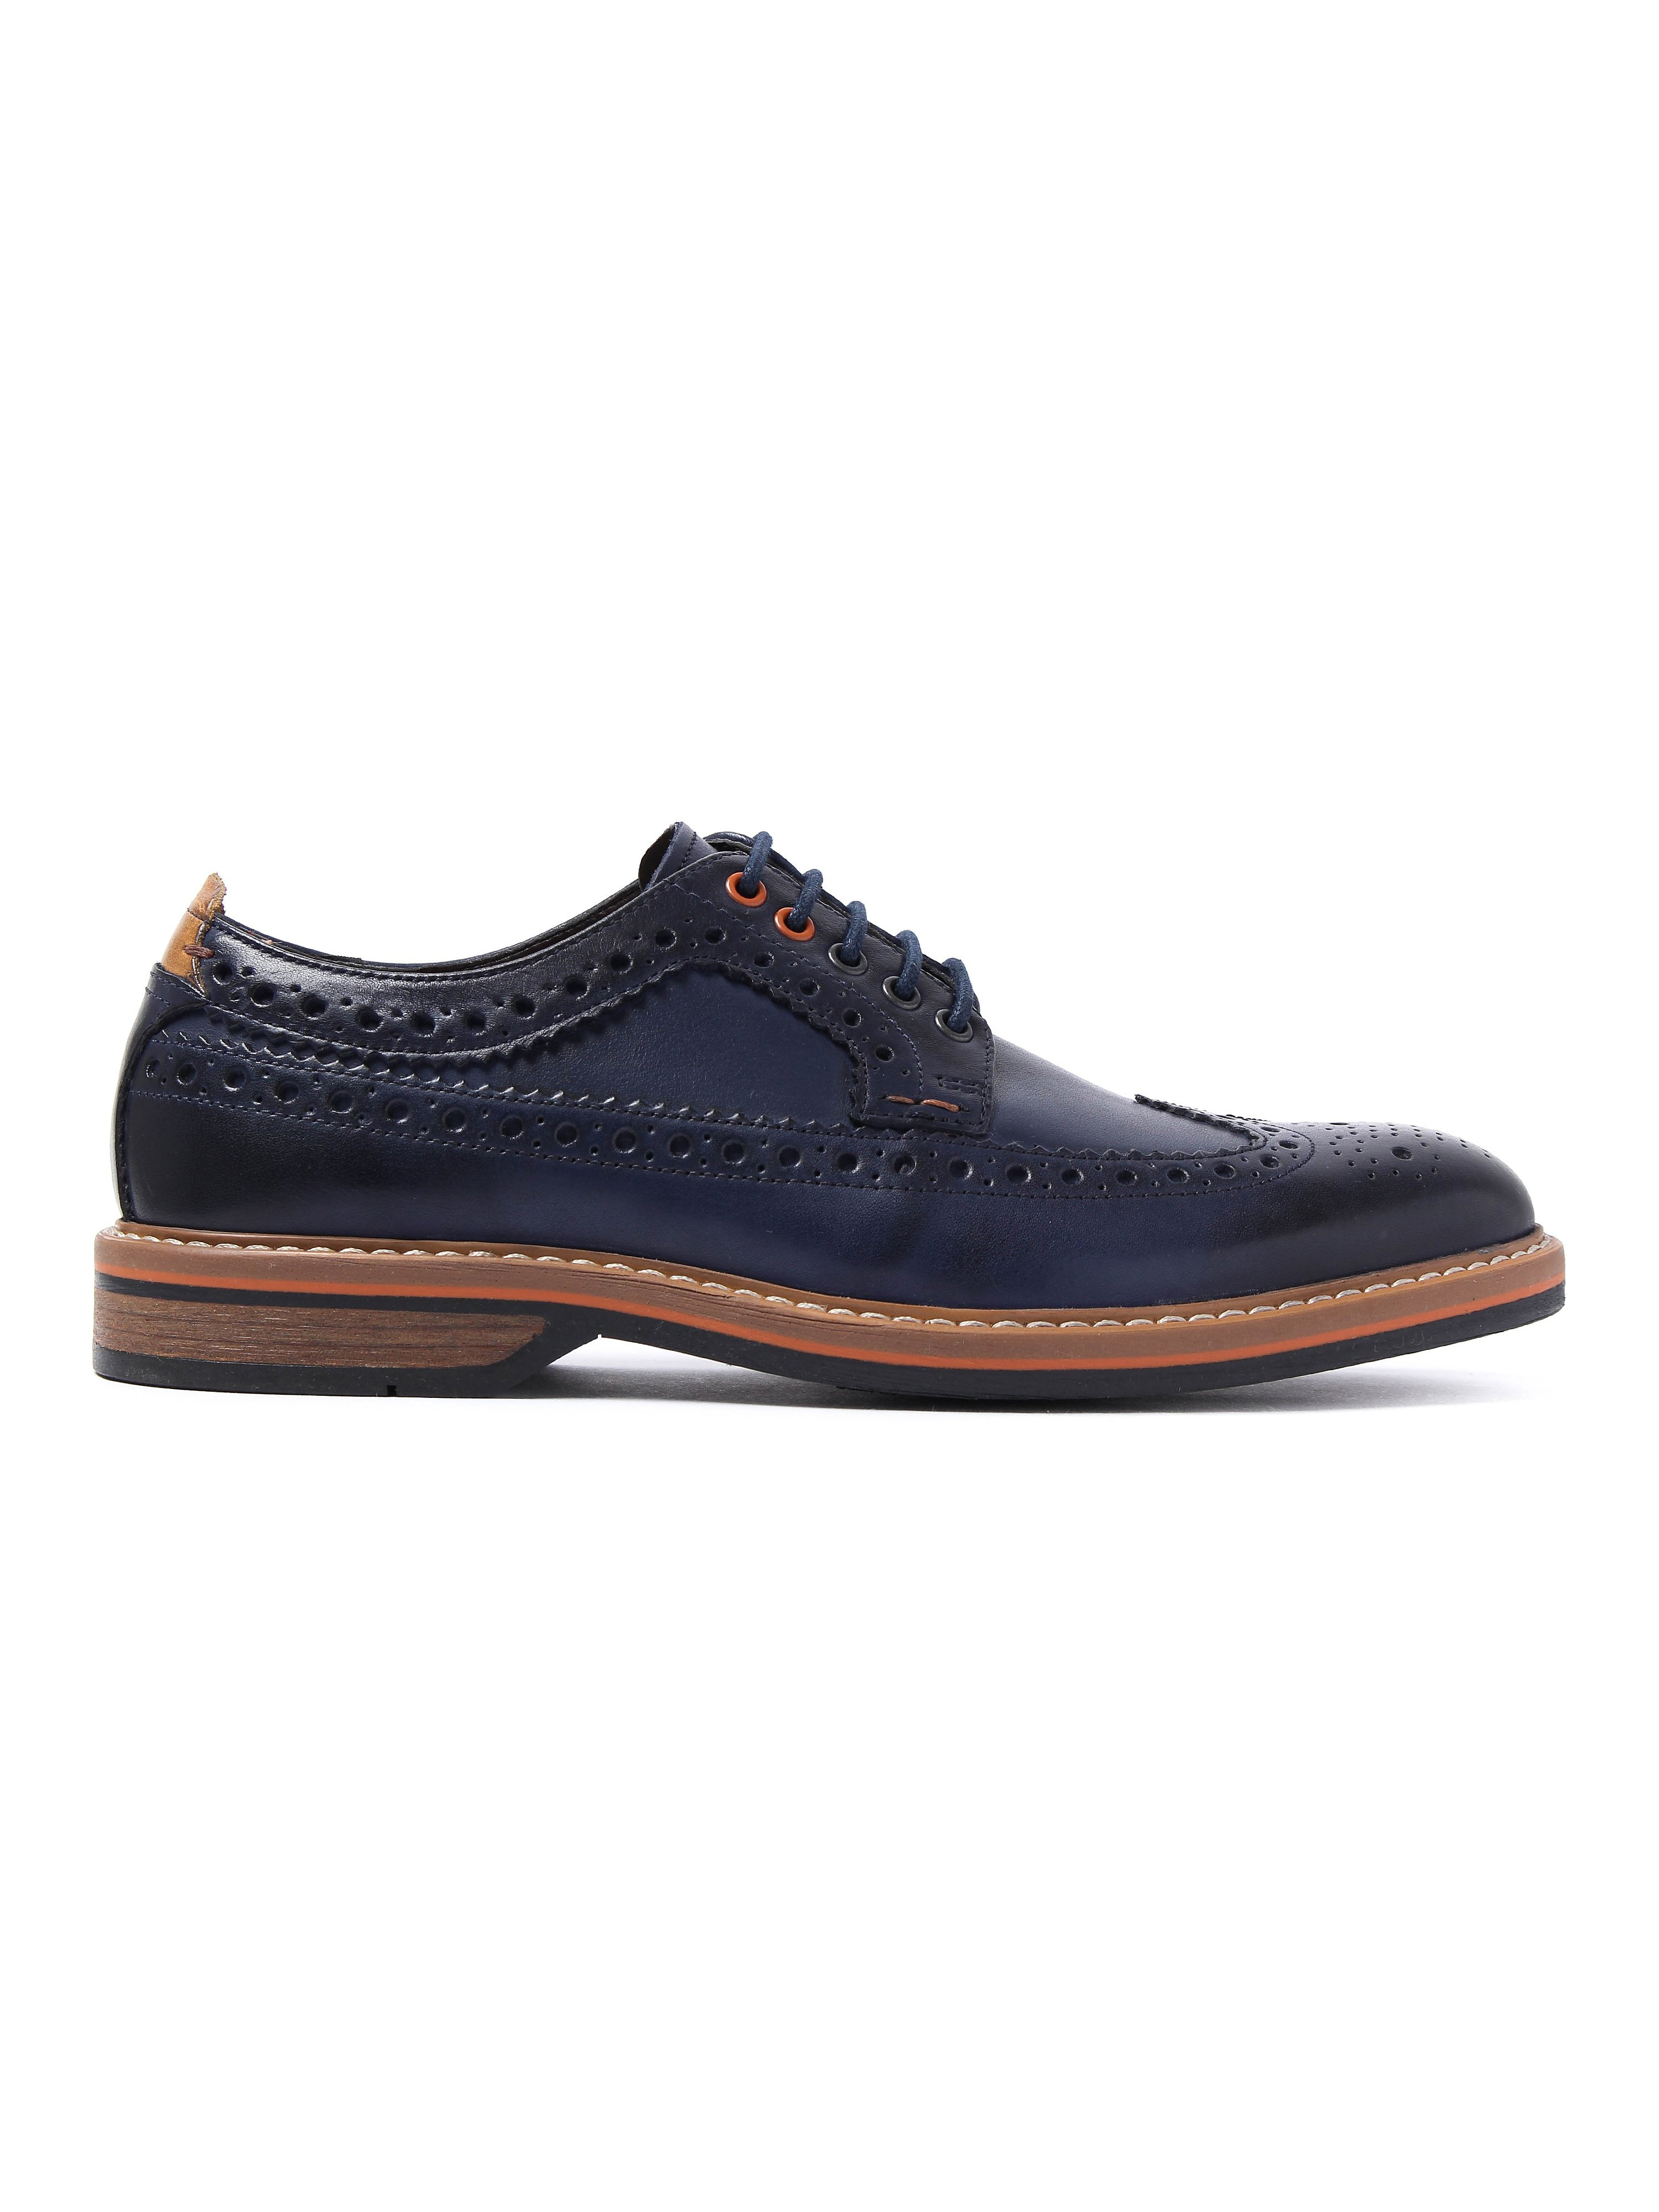 Clarks Pitney Limit Oxford Brogues - Blue